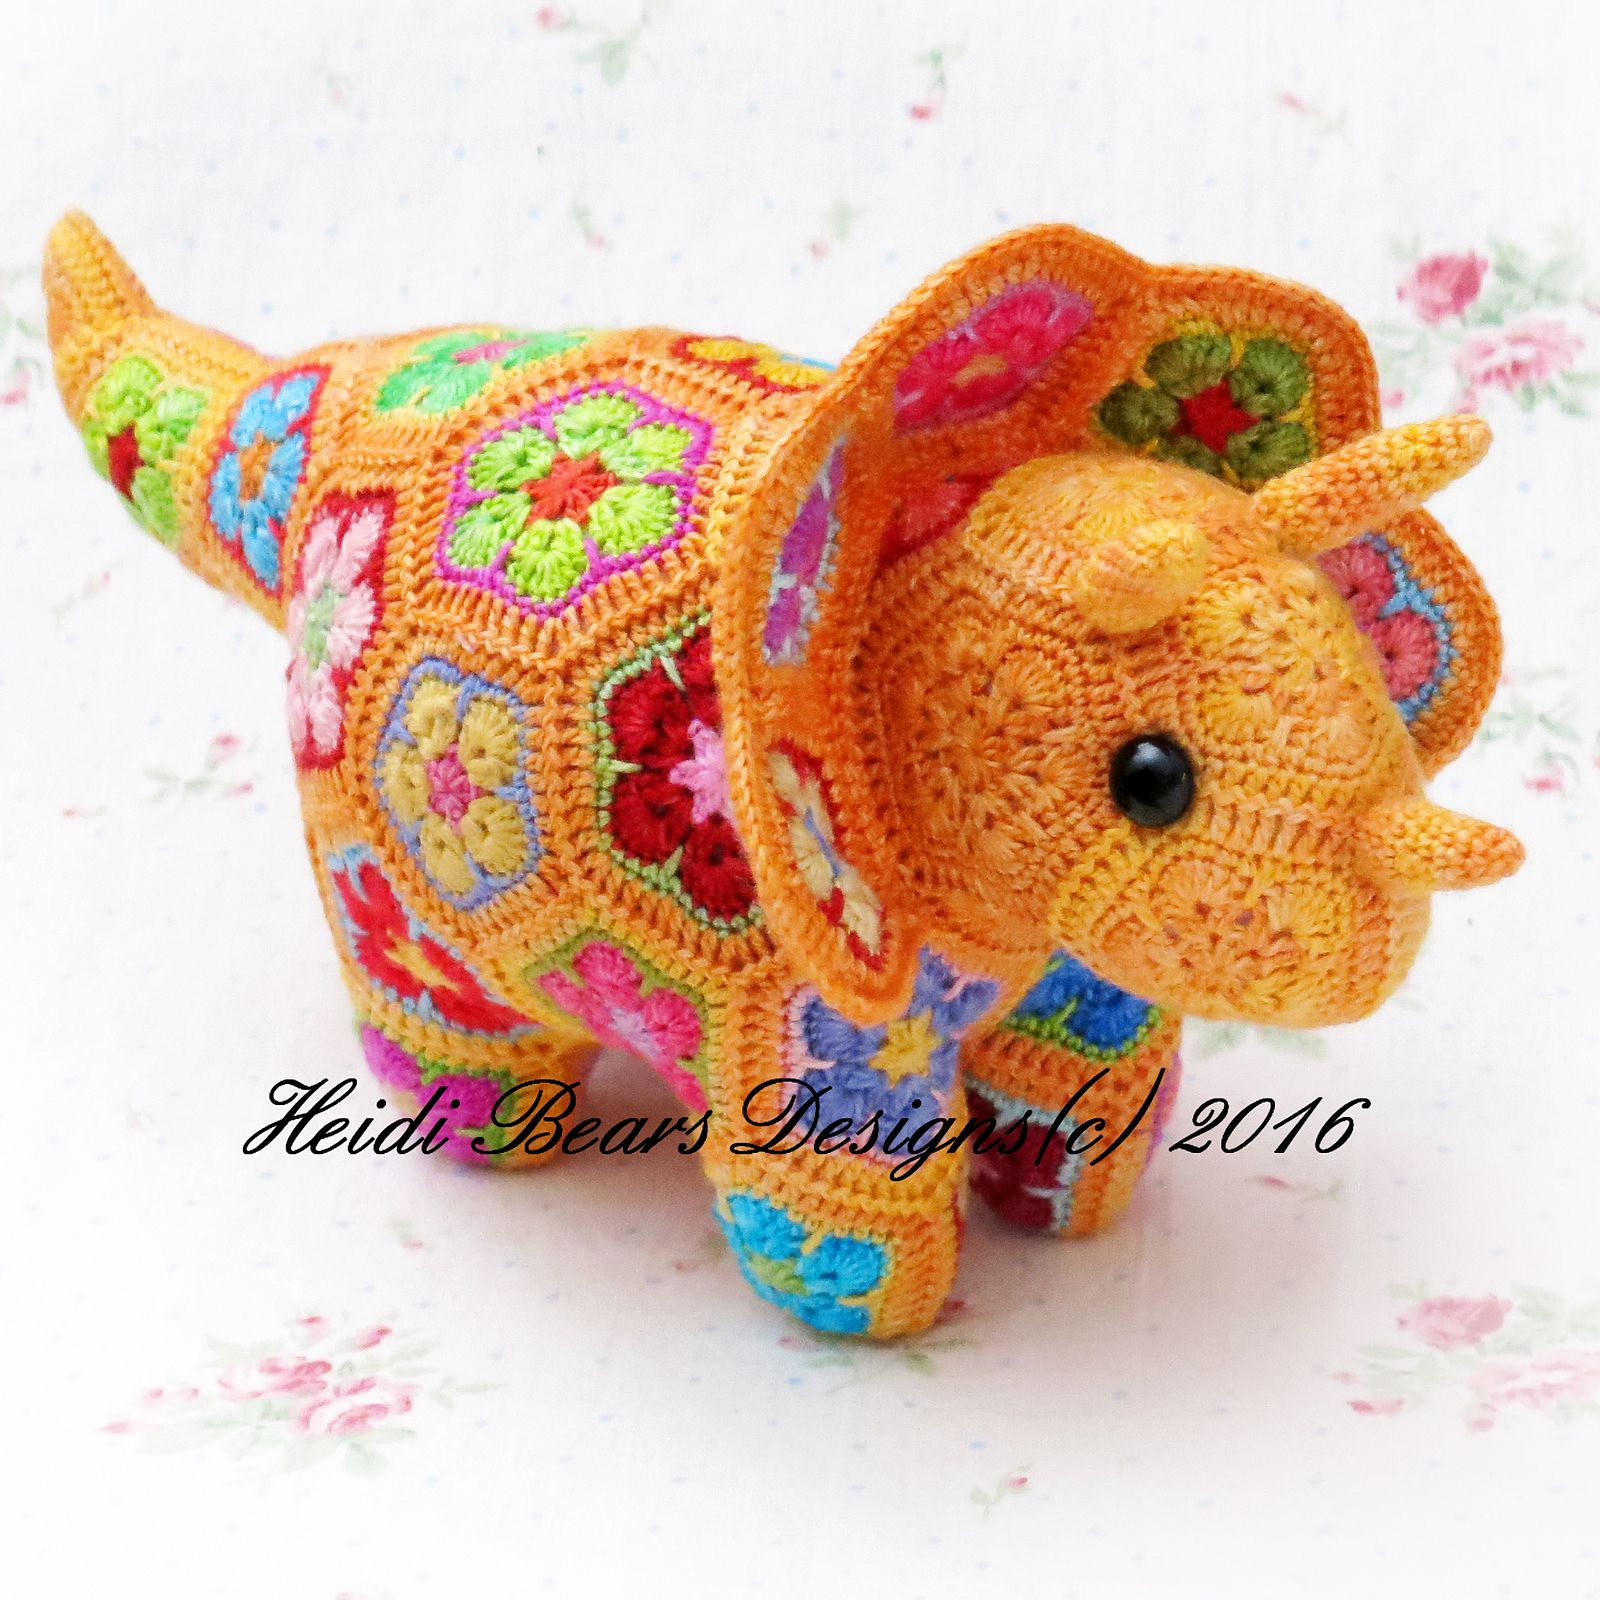 Ravelry: Plod the African Flower Triceratops pattern by Heidi Bears